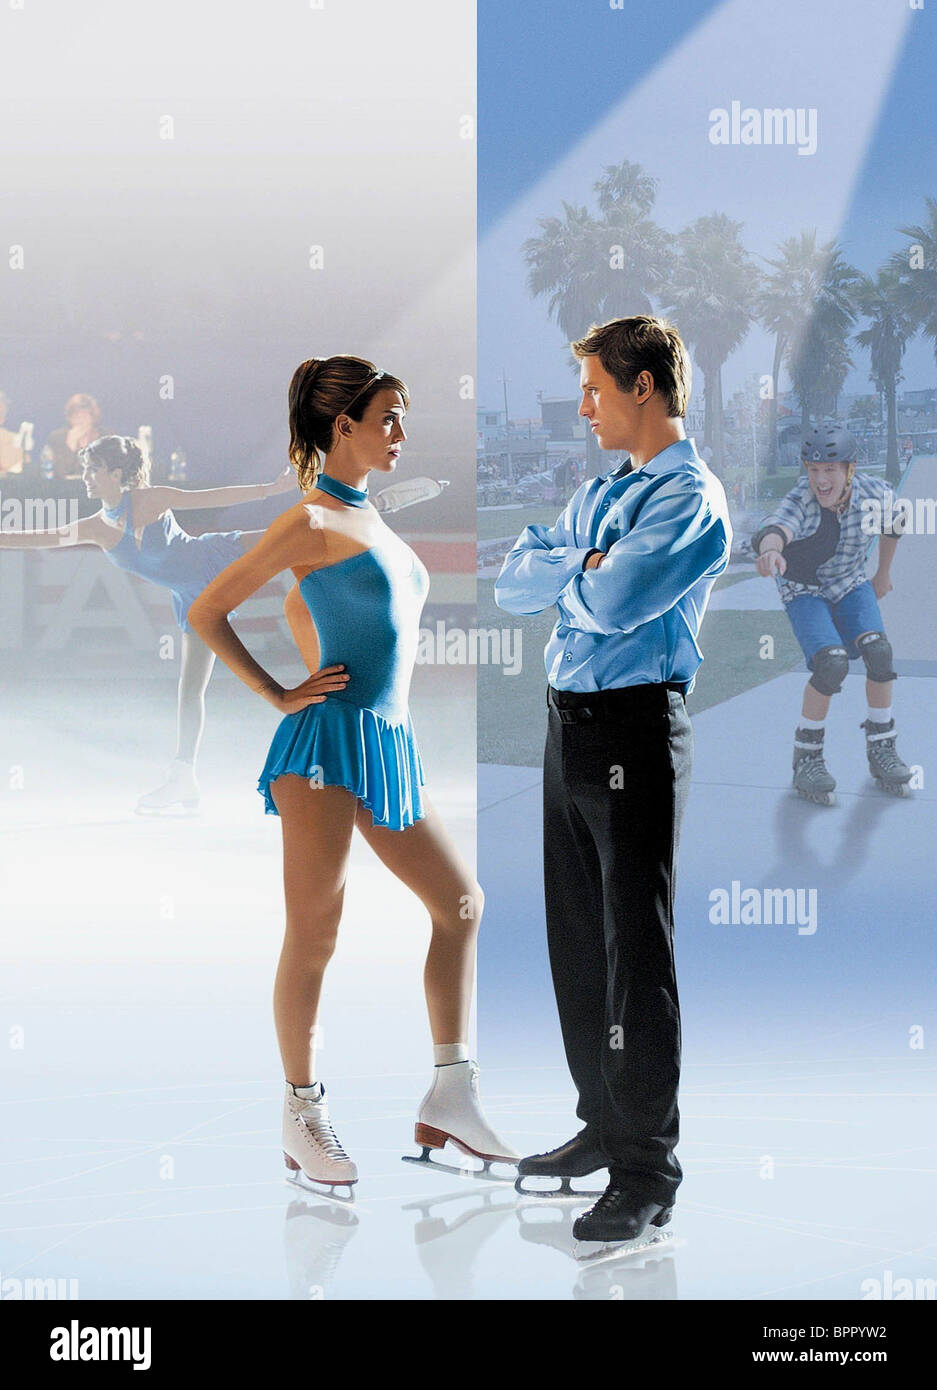 CHRISTY CARLSON ROMANO & ROSS THOMAS THE CUTTING EDGE: GOING FOR THE GOLD; THE CUTTING EDGE 2 (2006) - Stock Image